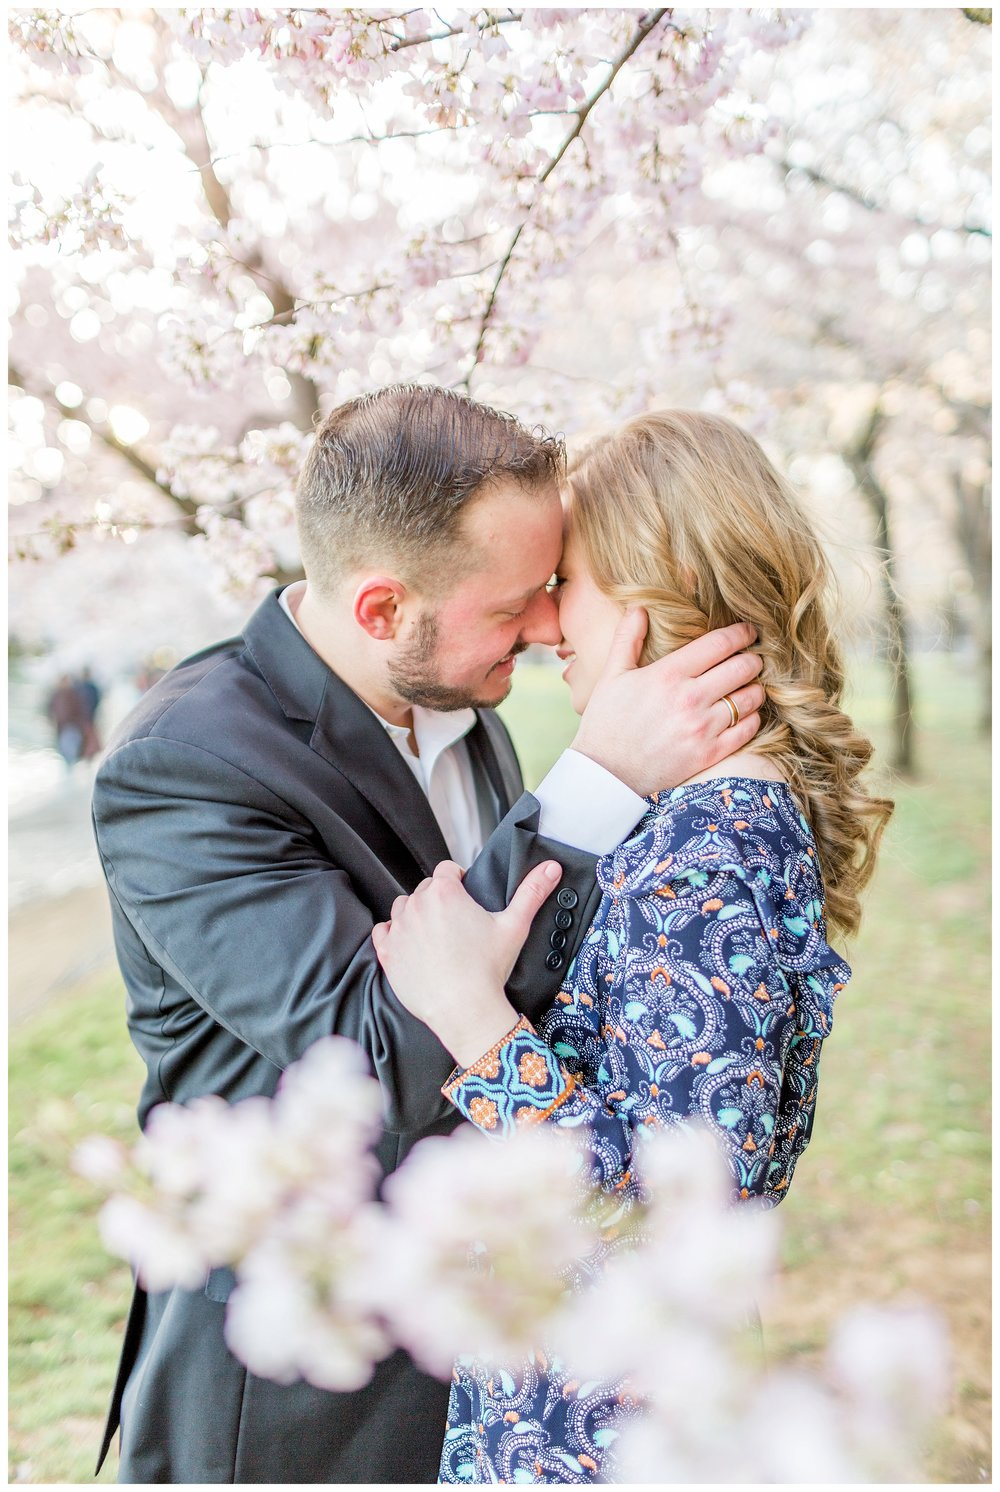 Cherry Blossom Engagement DC Wedding Photographer_0008.jpg